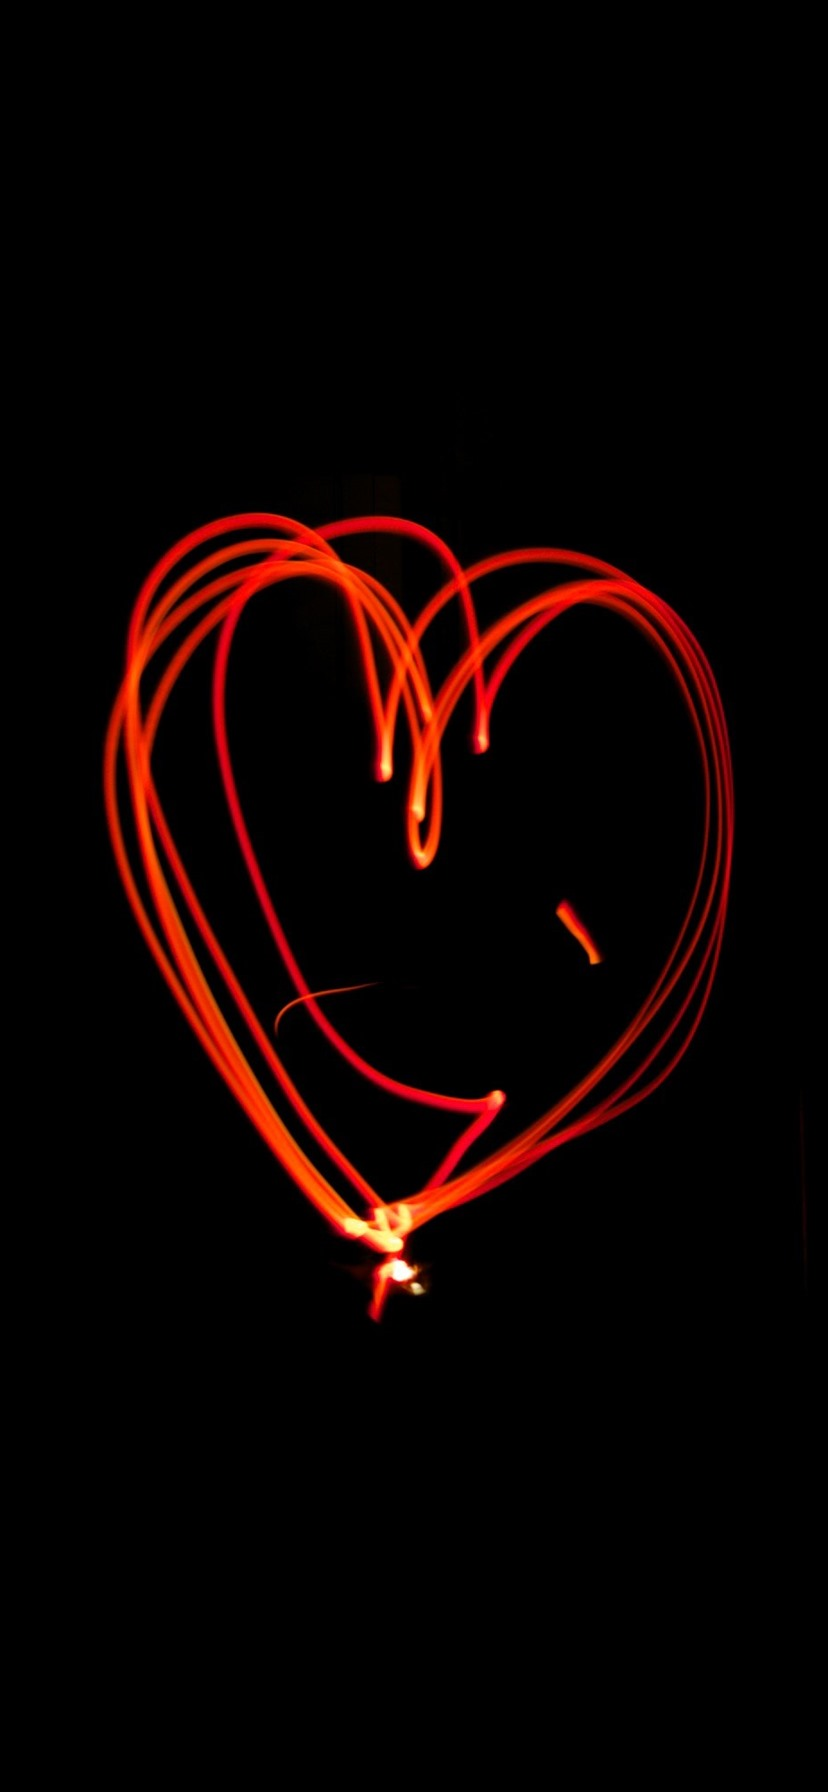 Red Love Heart Light Lines Black Background 1080x1920 Iphone 8 7